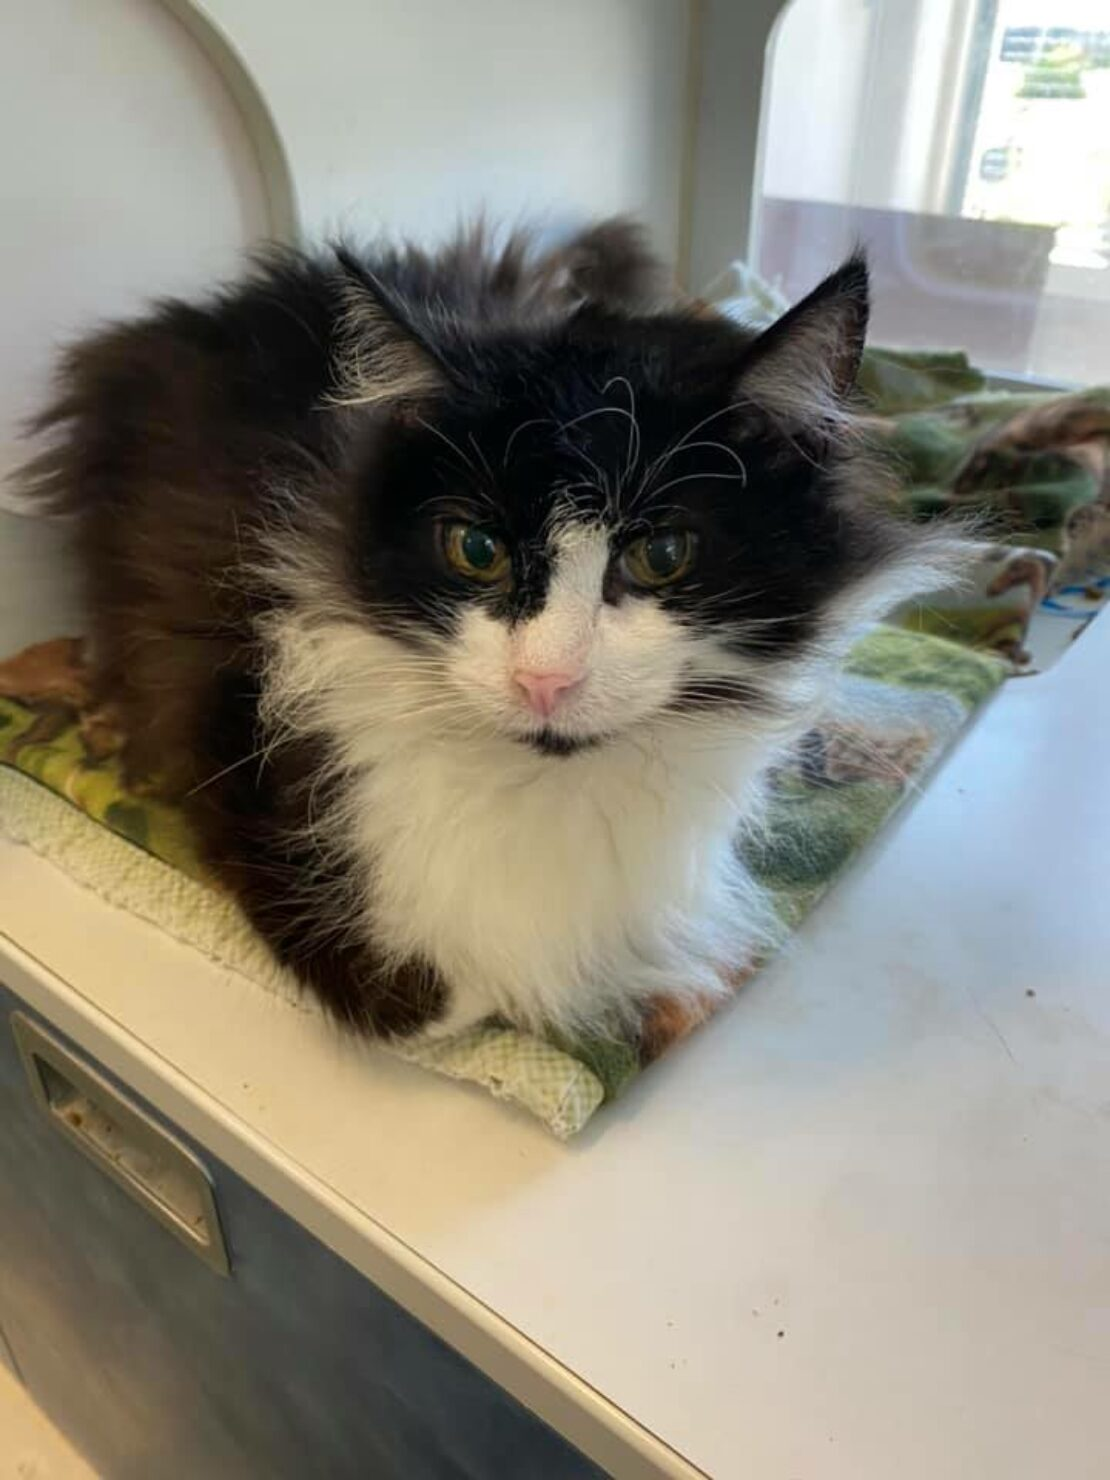 fluffy black cat with white chest and paws and a pink nose lies in a kennel, looking out